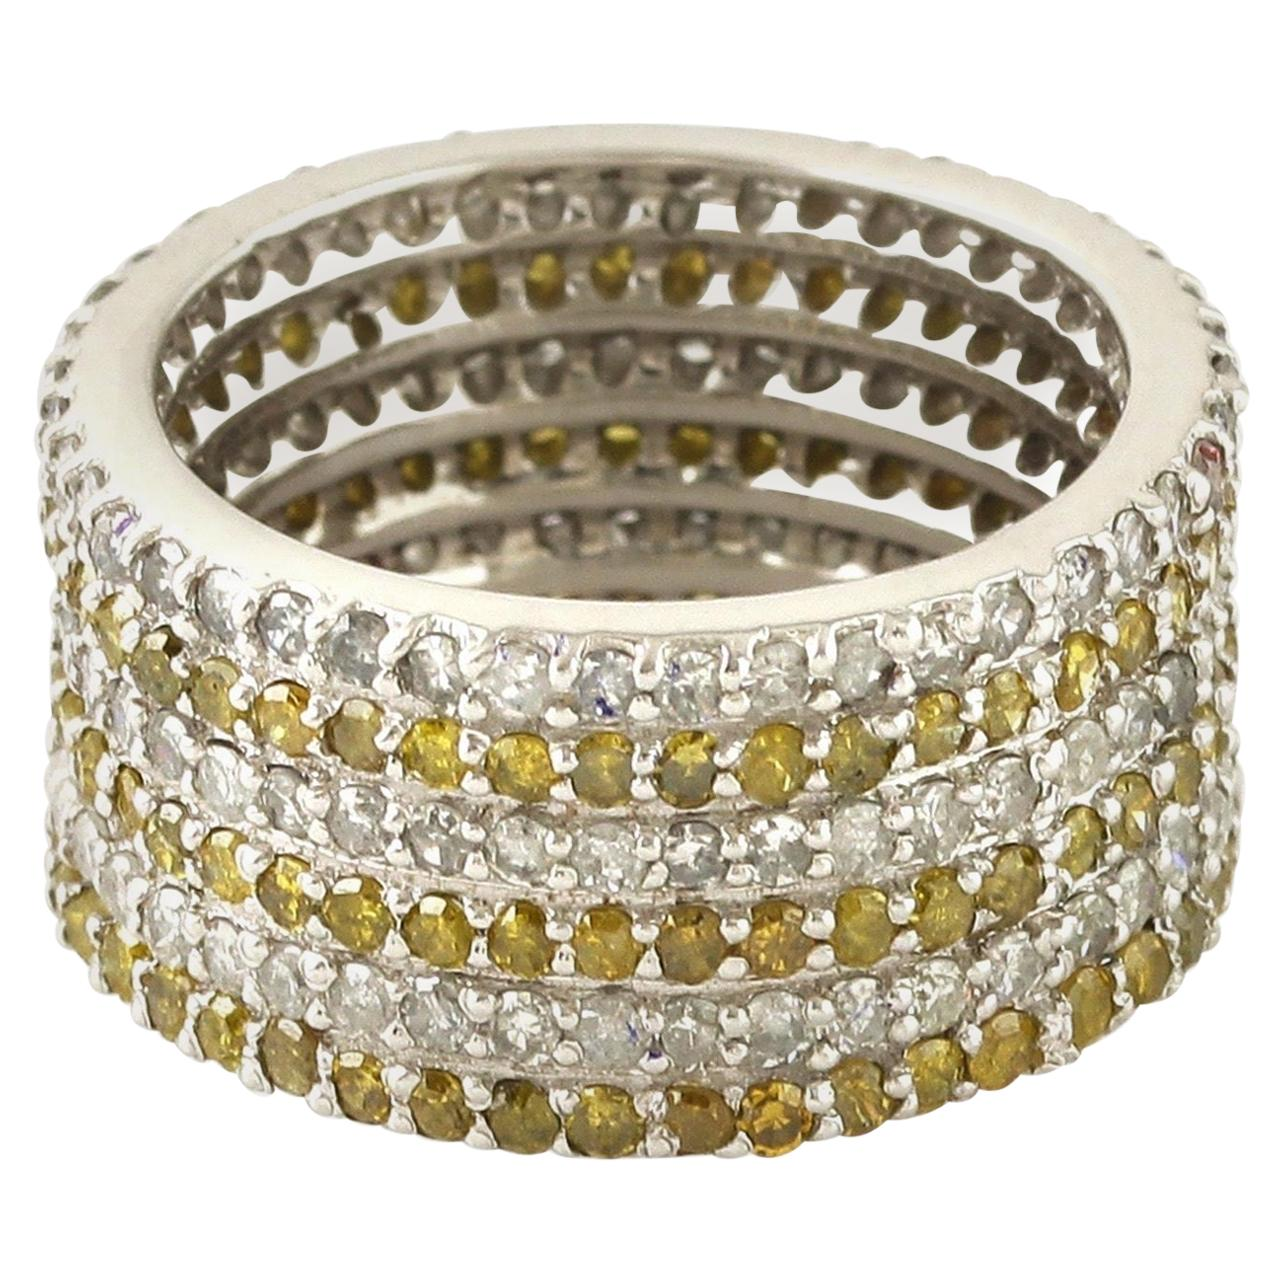 2.58 Carat Diamond 18 Karat Gold Eternity Ring